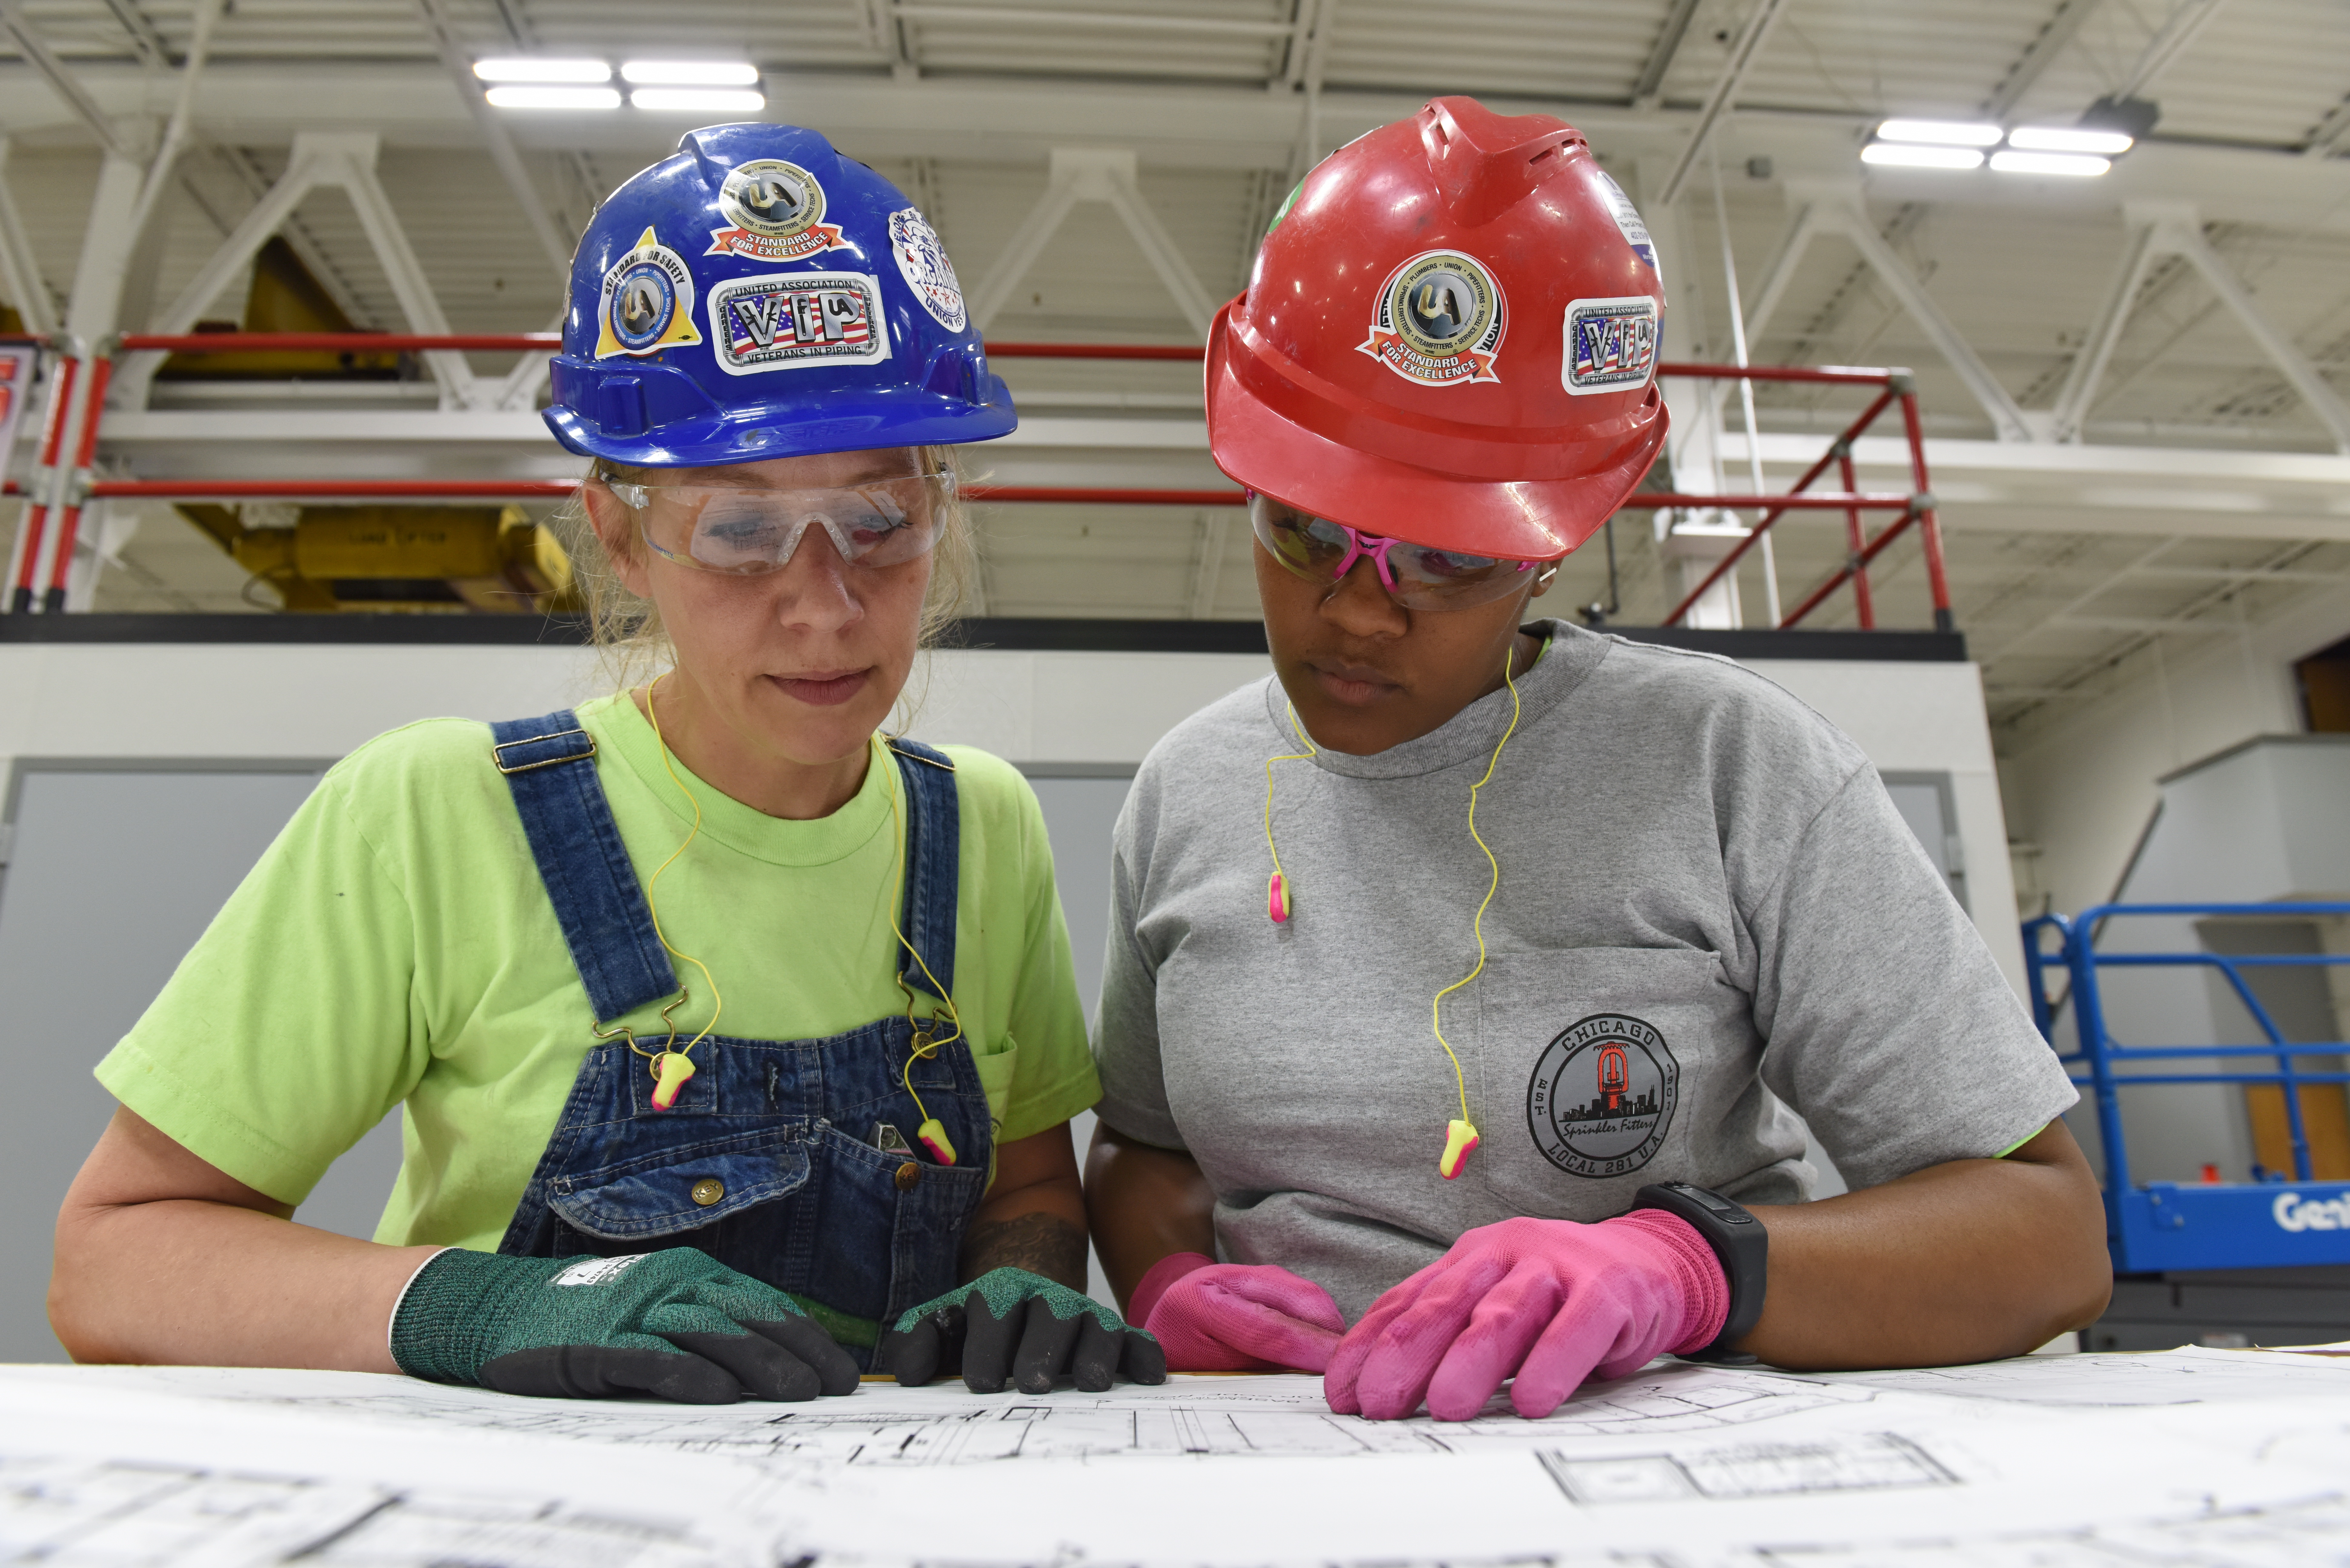 Women wearing hardhats